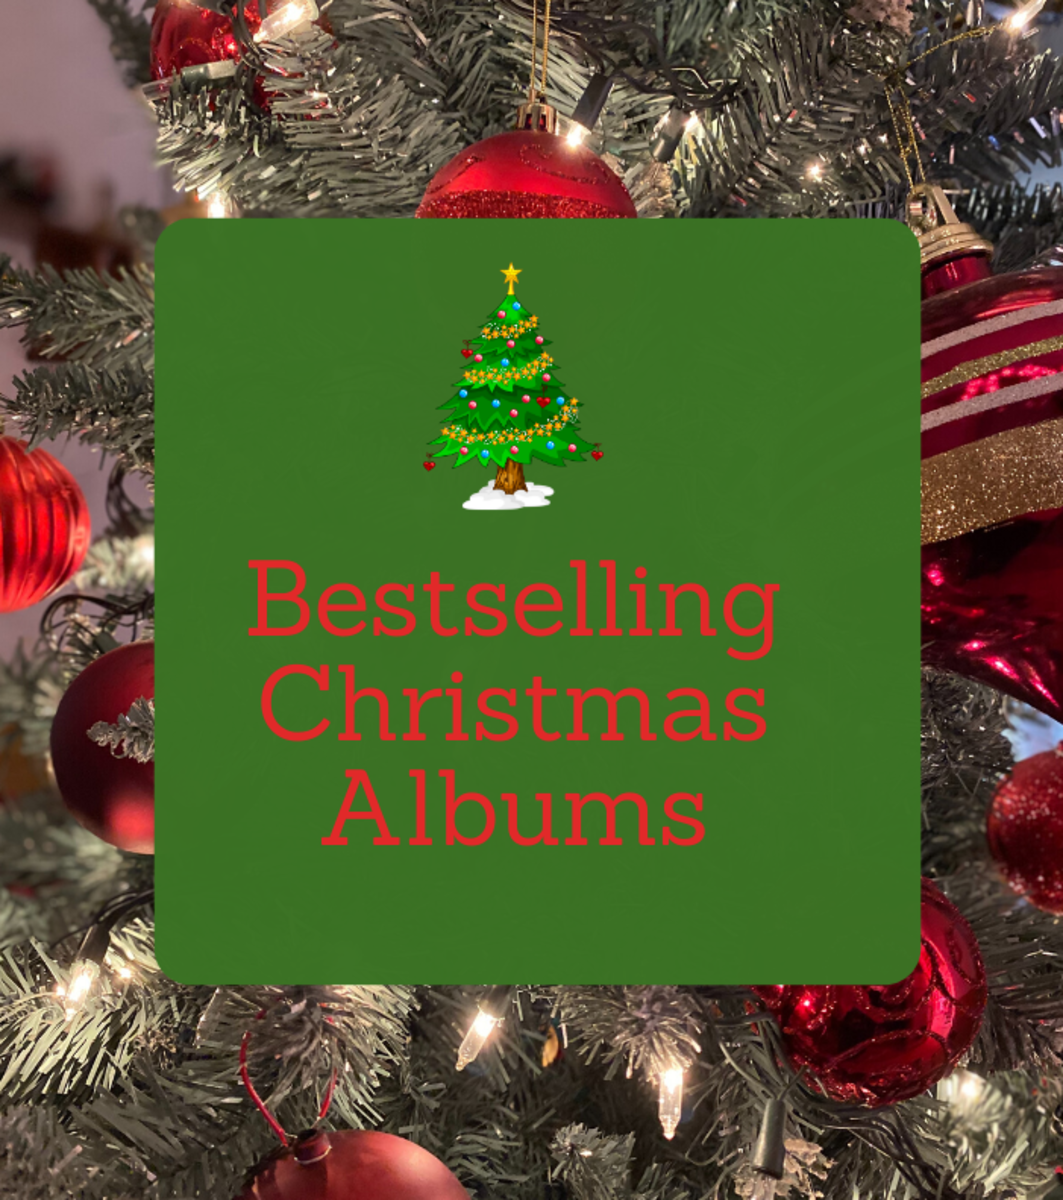 The great Christmas albums are perfect for family get-togethers.